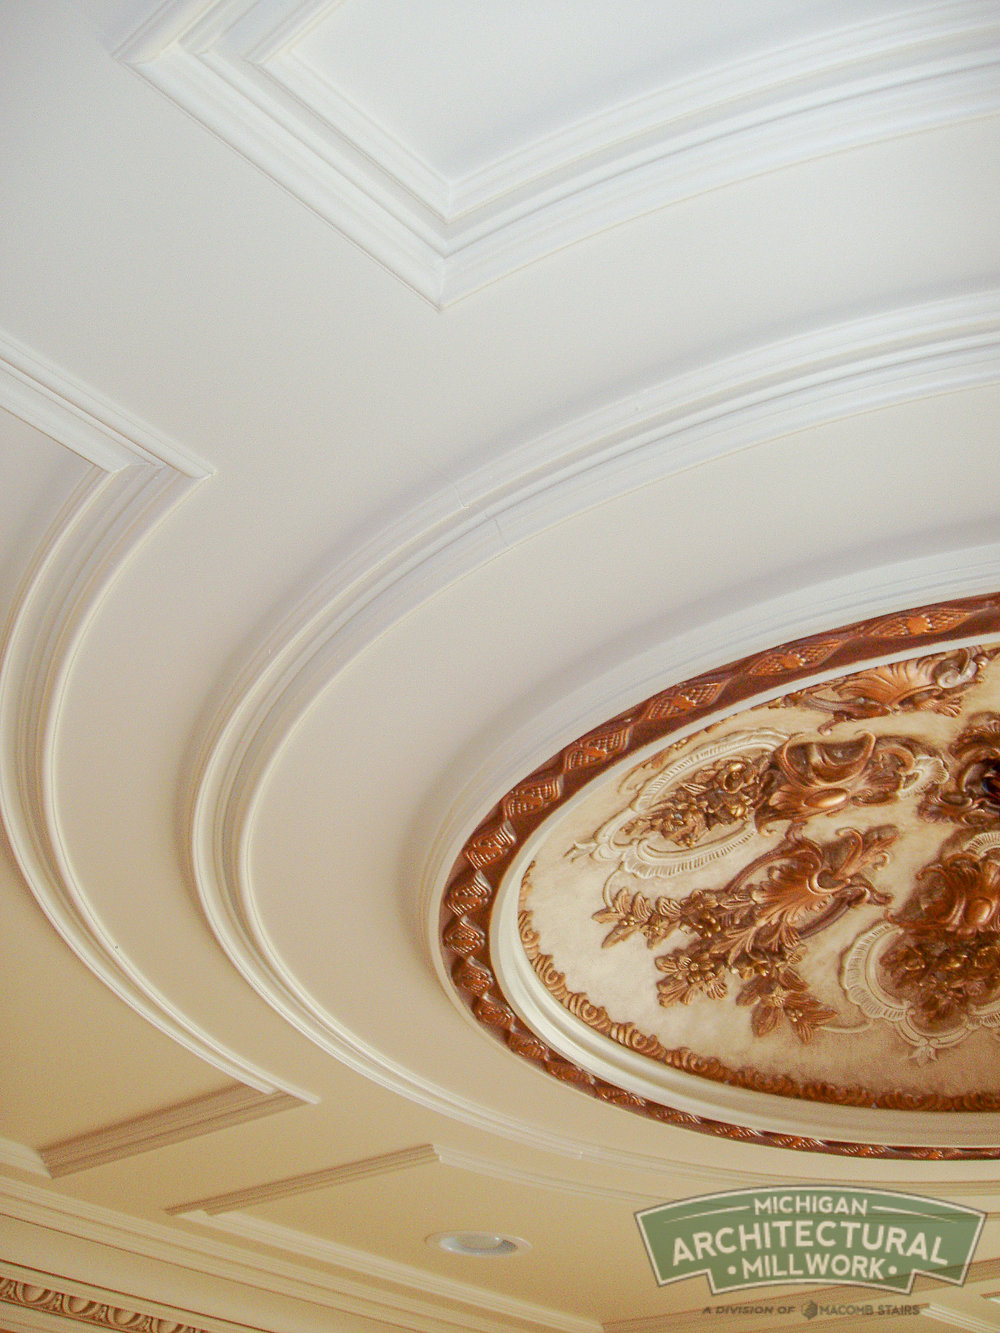 Michigan Architectural Millwork- Moulding and Millwork Photo-178.jpg